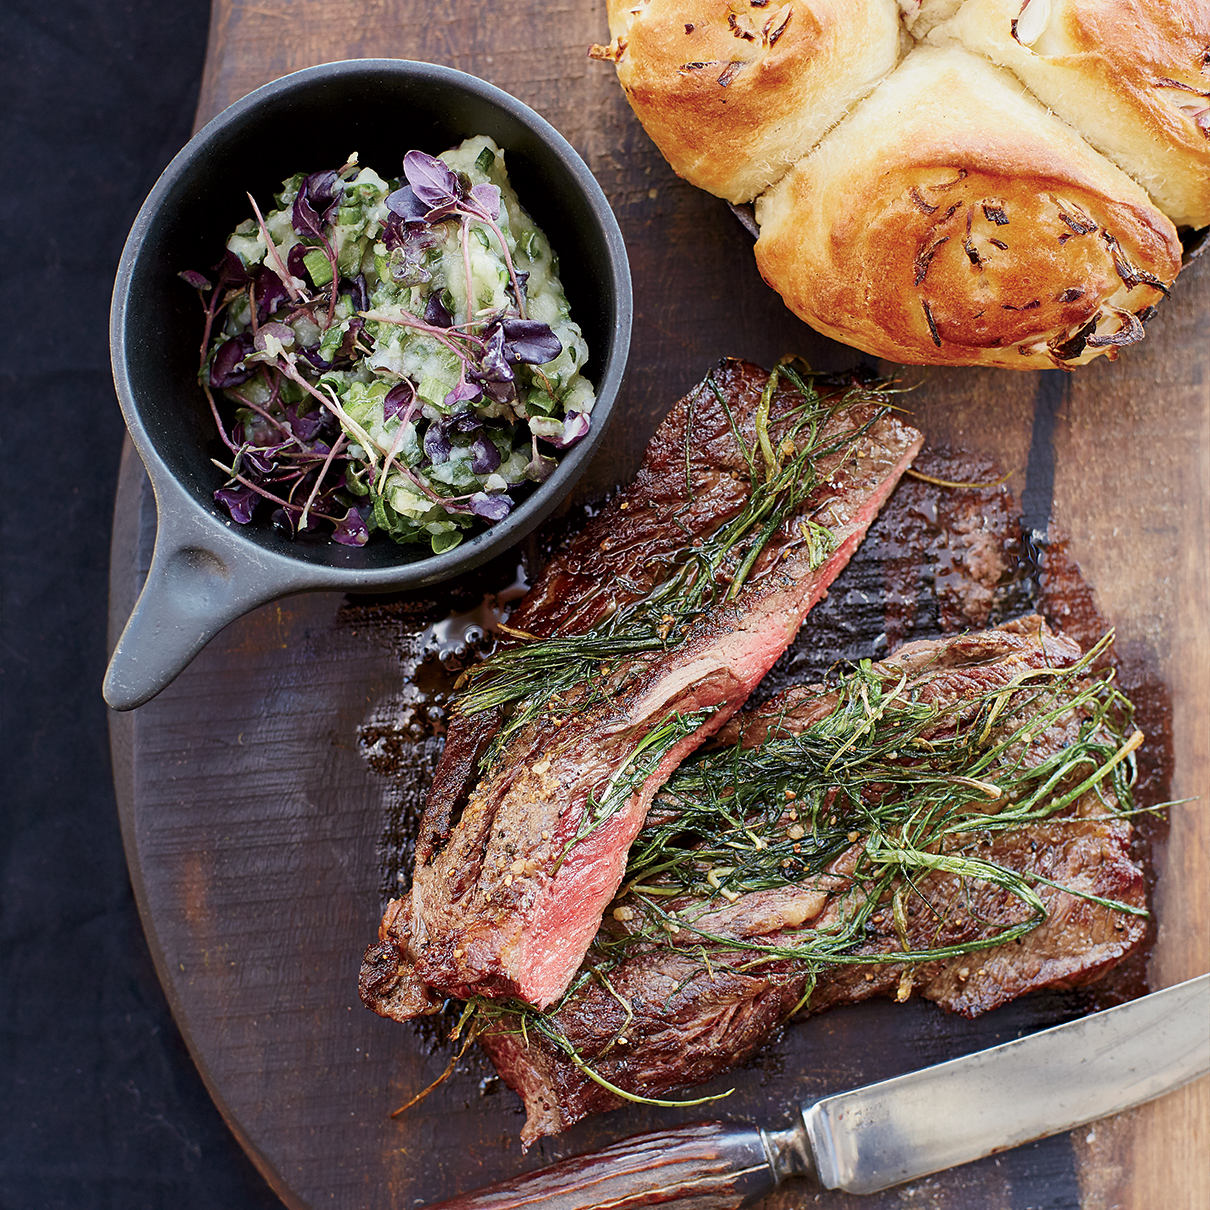 201406-r-griddled-gaucho-steak-with-bread-and-basil-salad.jpg